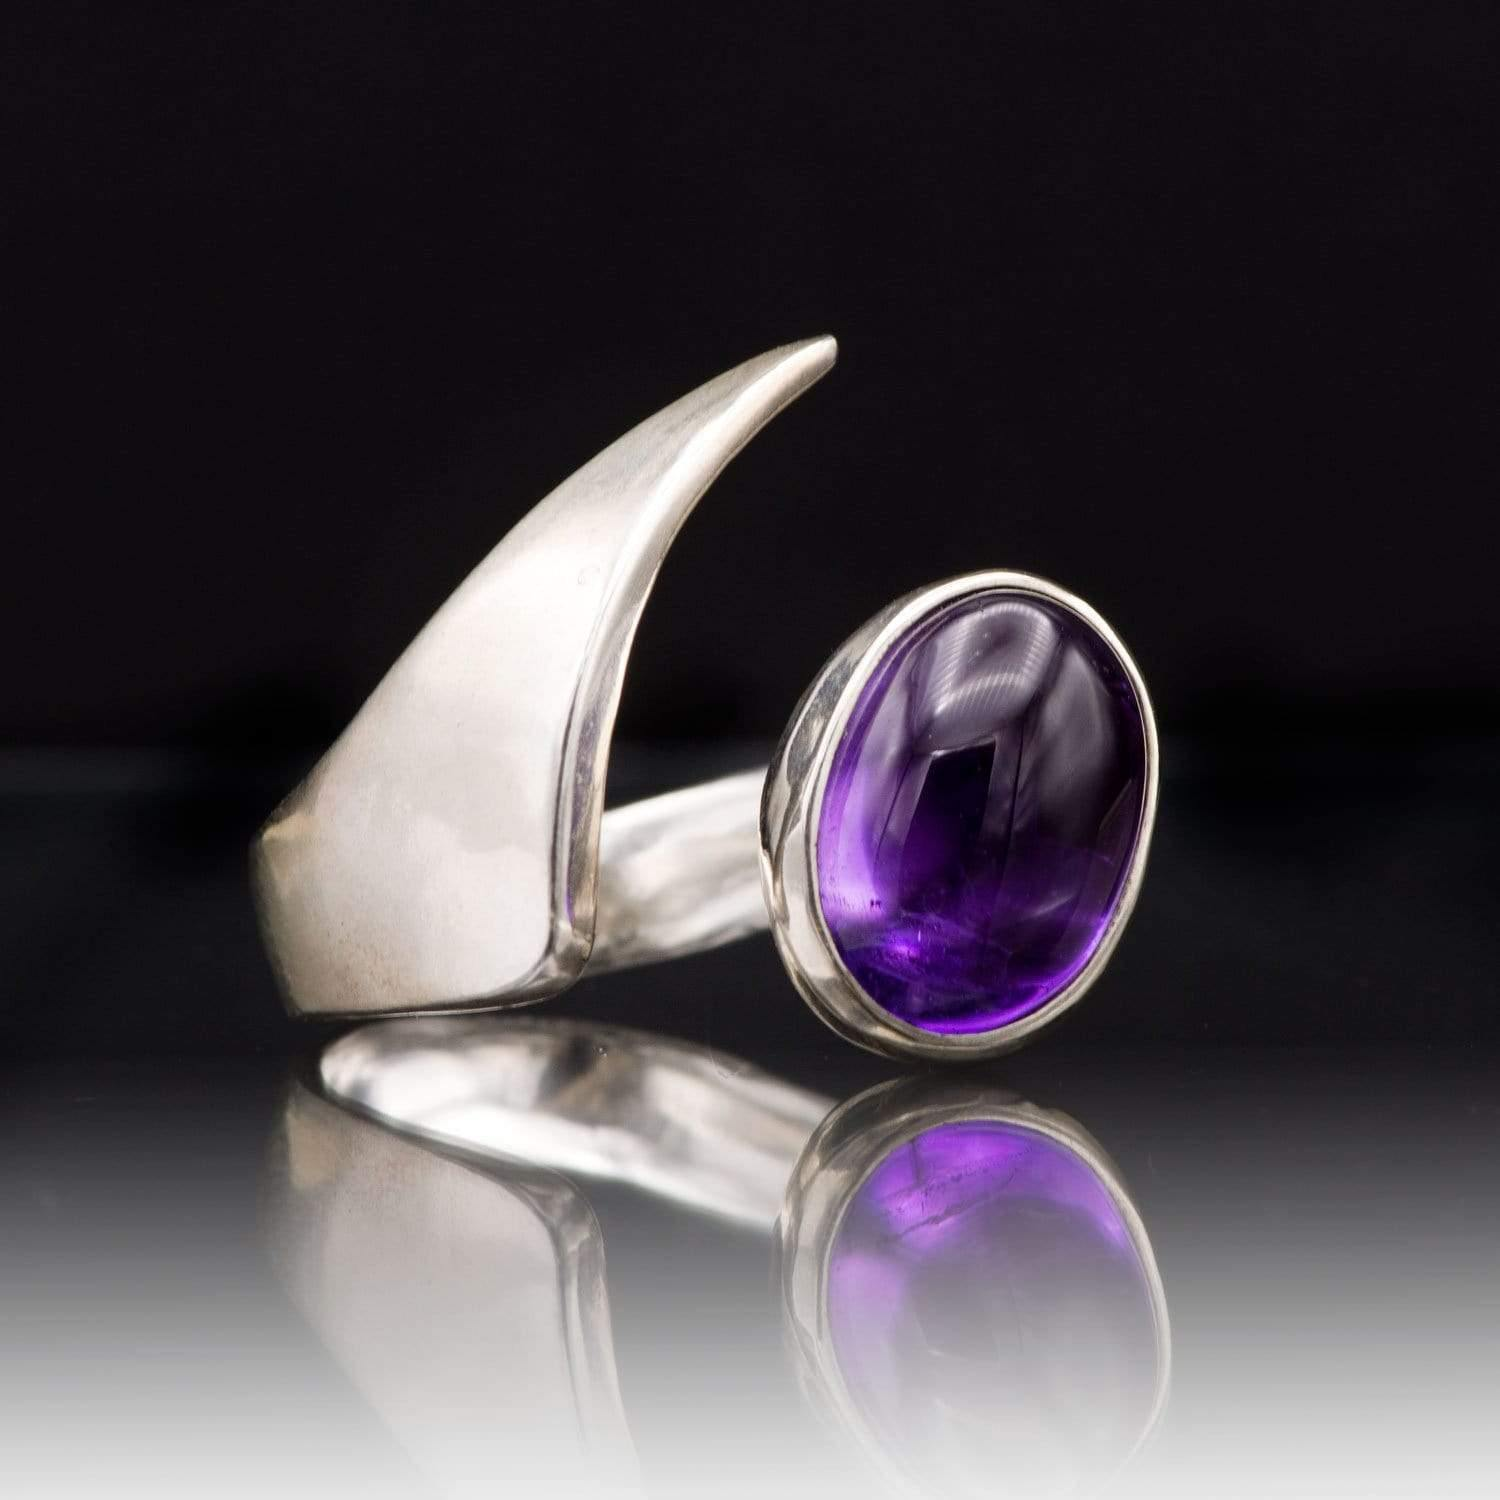 Amethyst Mermaid Sterling Silver Ring Statement Cocktail Ring, ready to ship size 6.5 to 8.5